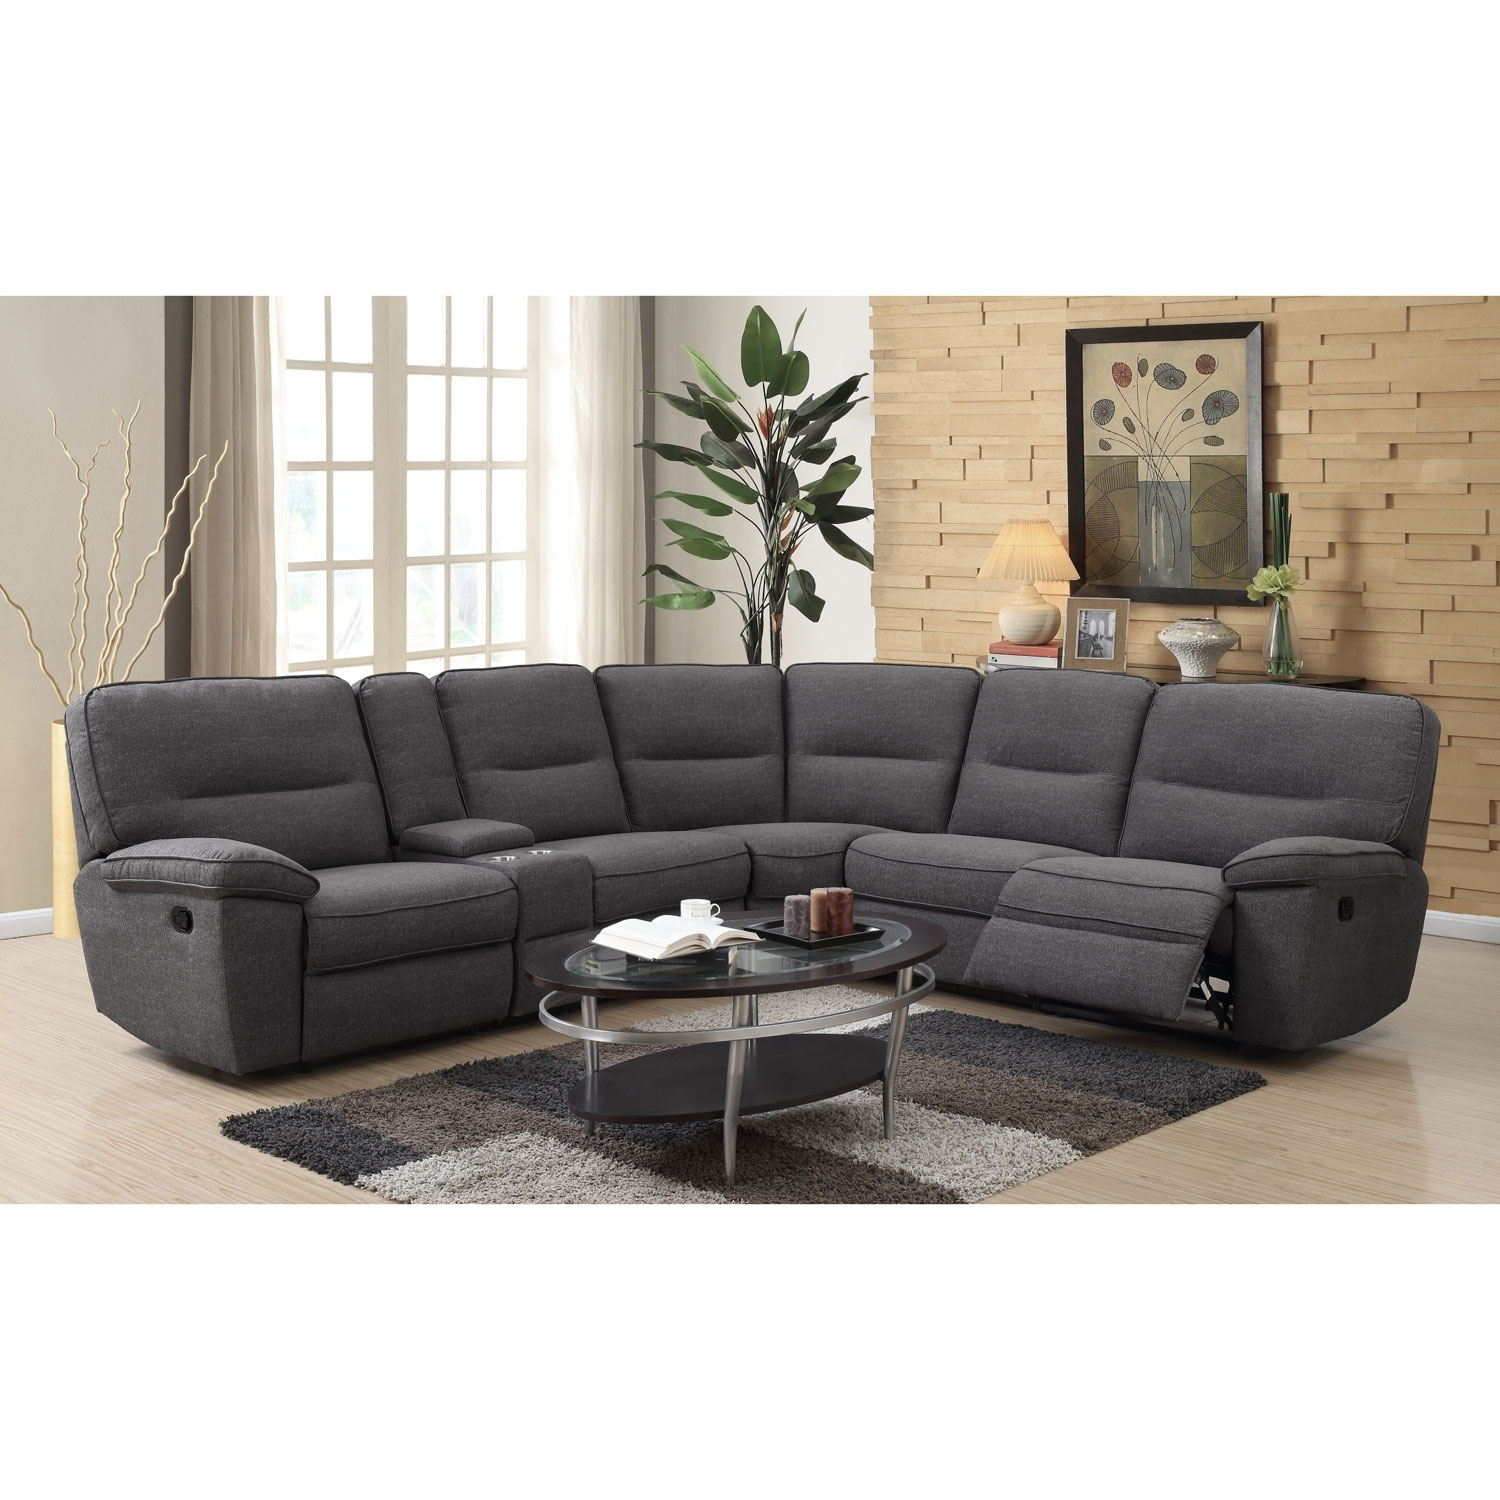 Emerald Home Furnishings Emerald Home Alberta 6 Piece Sectional Throughout Norfolk Grey 6 Piece Sectionals With Laf Chaise (Photo 29 of 30)